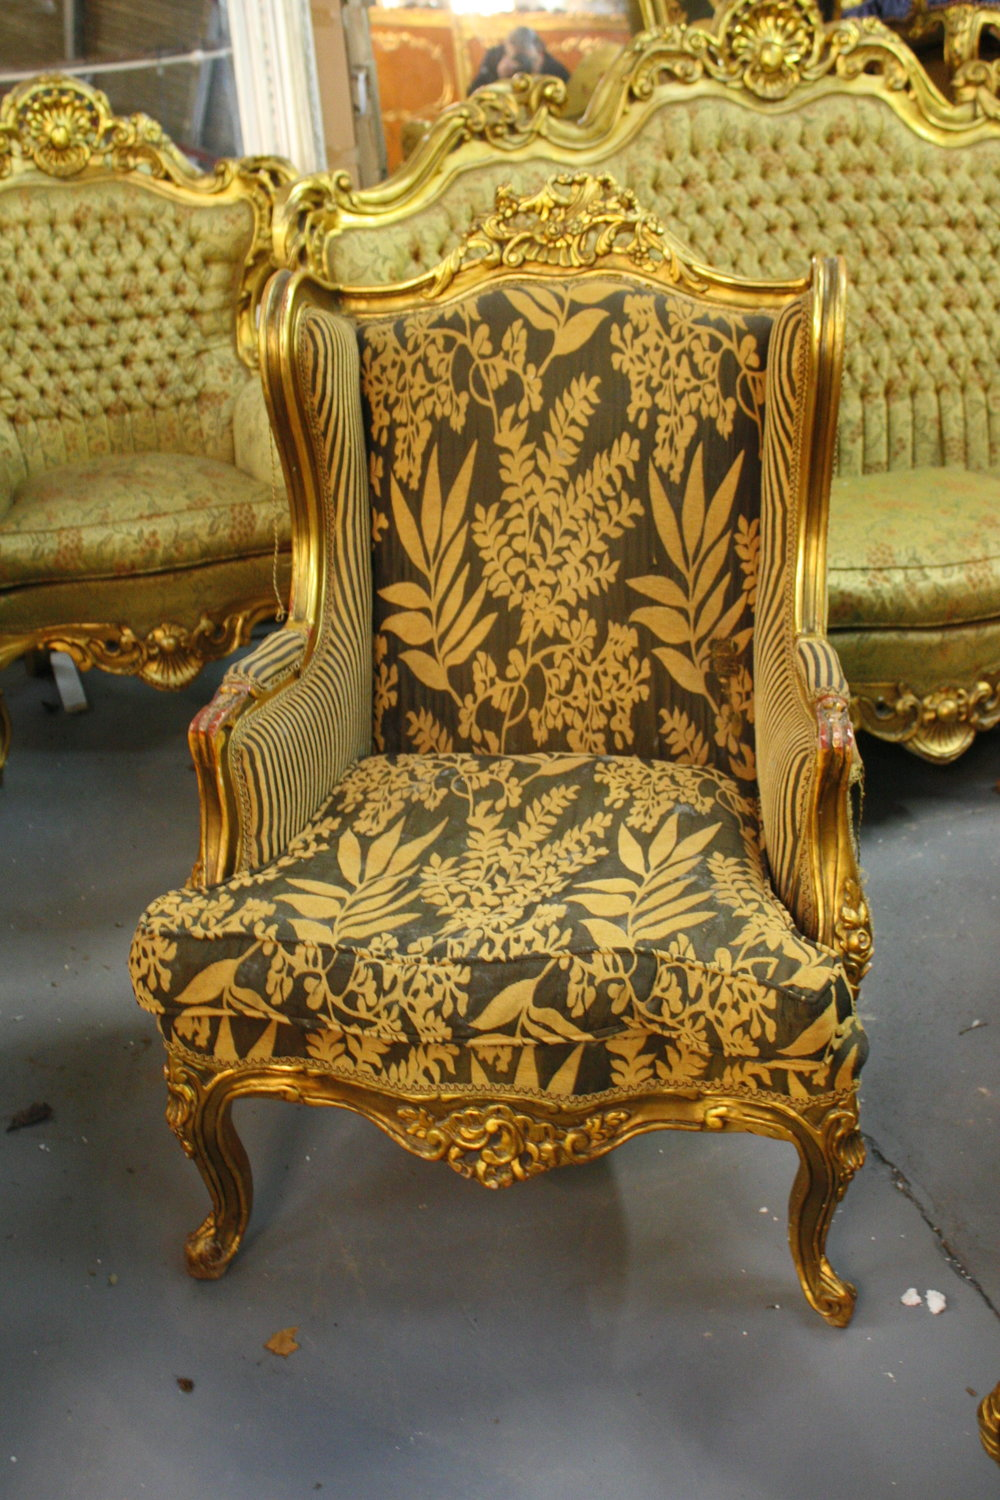 Renaissance Antique Furniture and Lighting Warehouse Dublin Ireland chairs - Carved Wood Framed Chair — RENAISSANCE